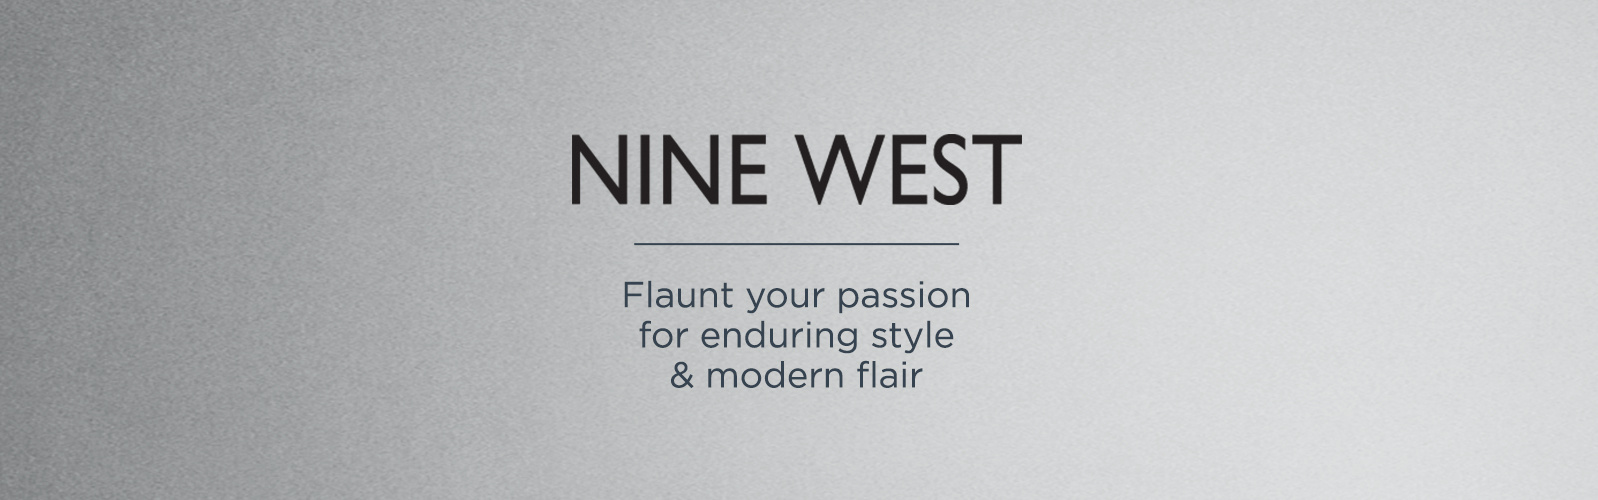 Nine West. Flaunt your passion for enduring style & modern flair